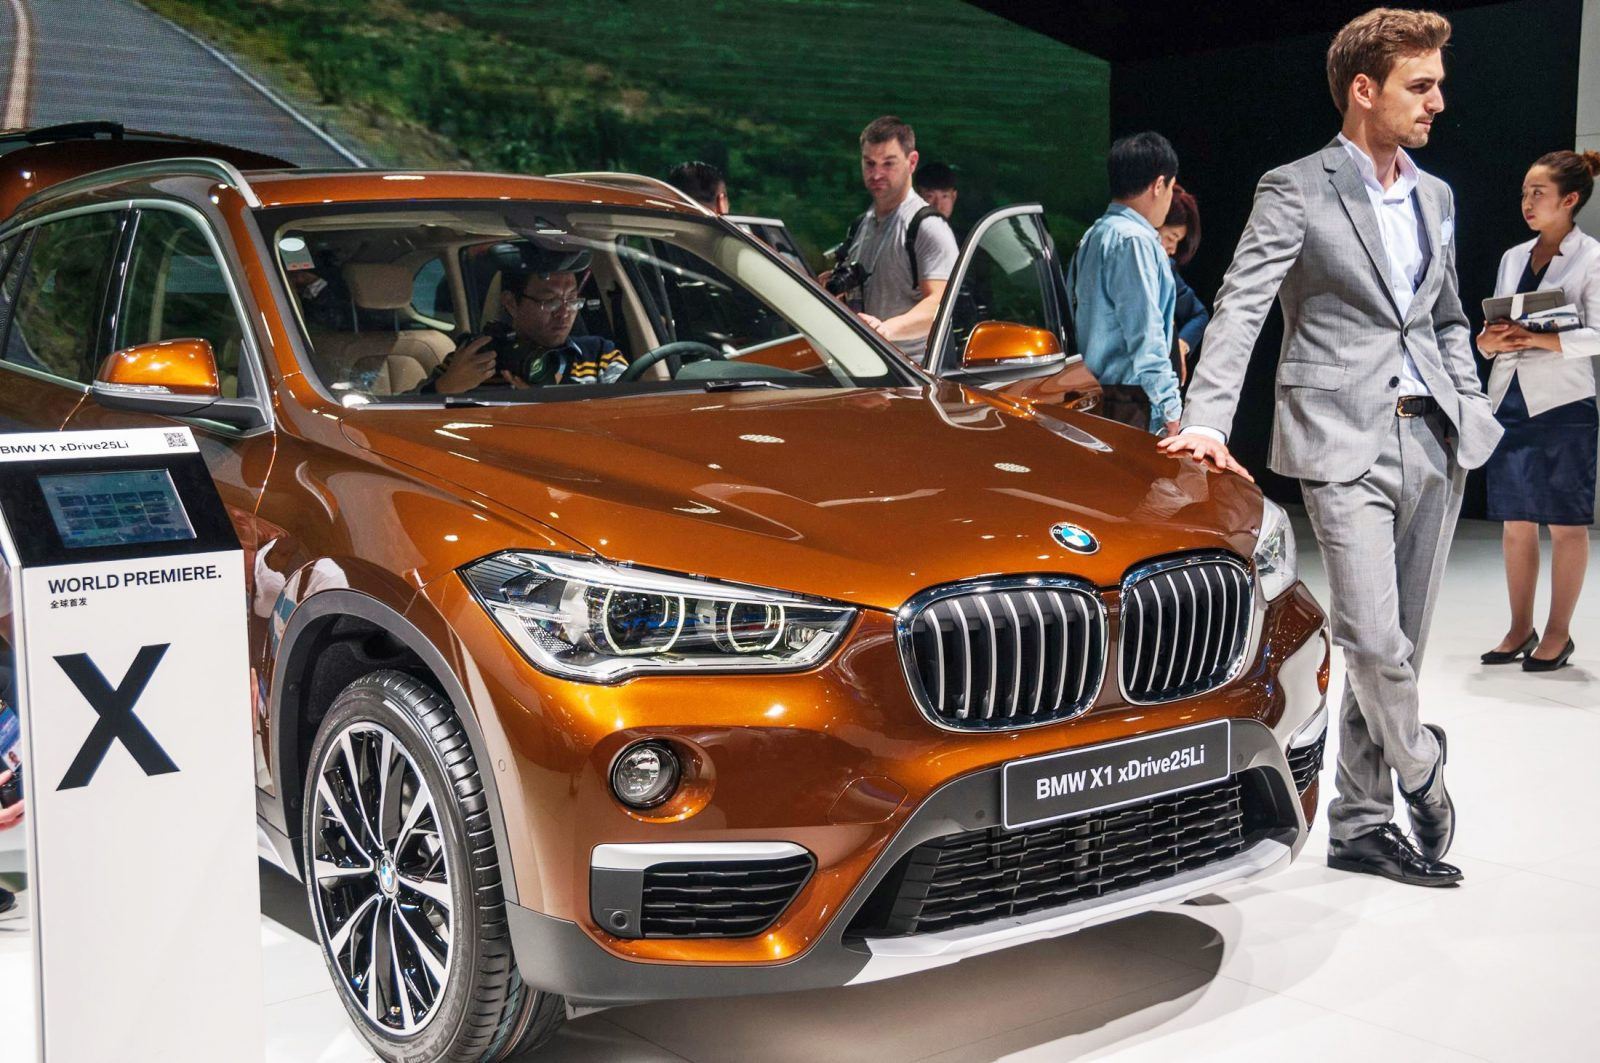 bmw analysis for china Page 3 china economic growth is in process of an engineered soft landing bmw group in china, july 9, 2014 source: national bureau of statistics of china.